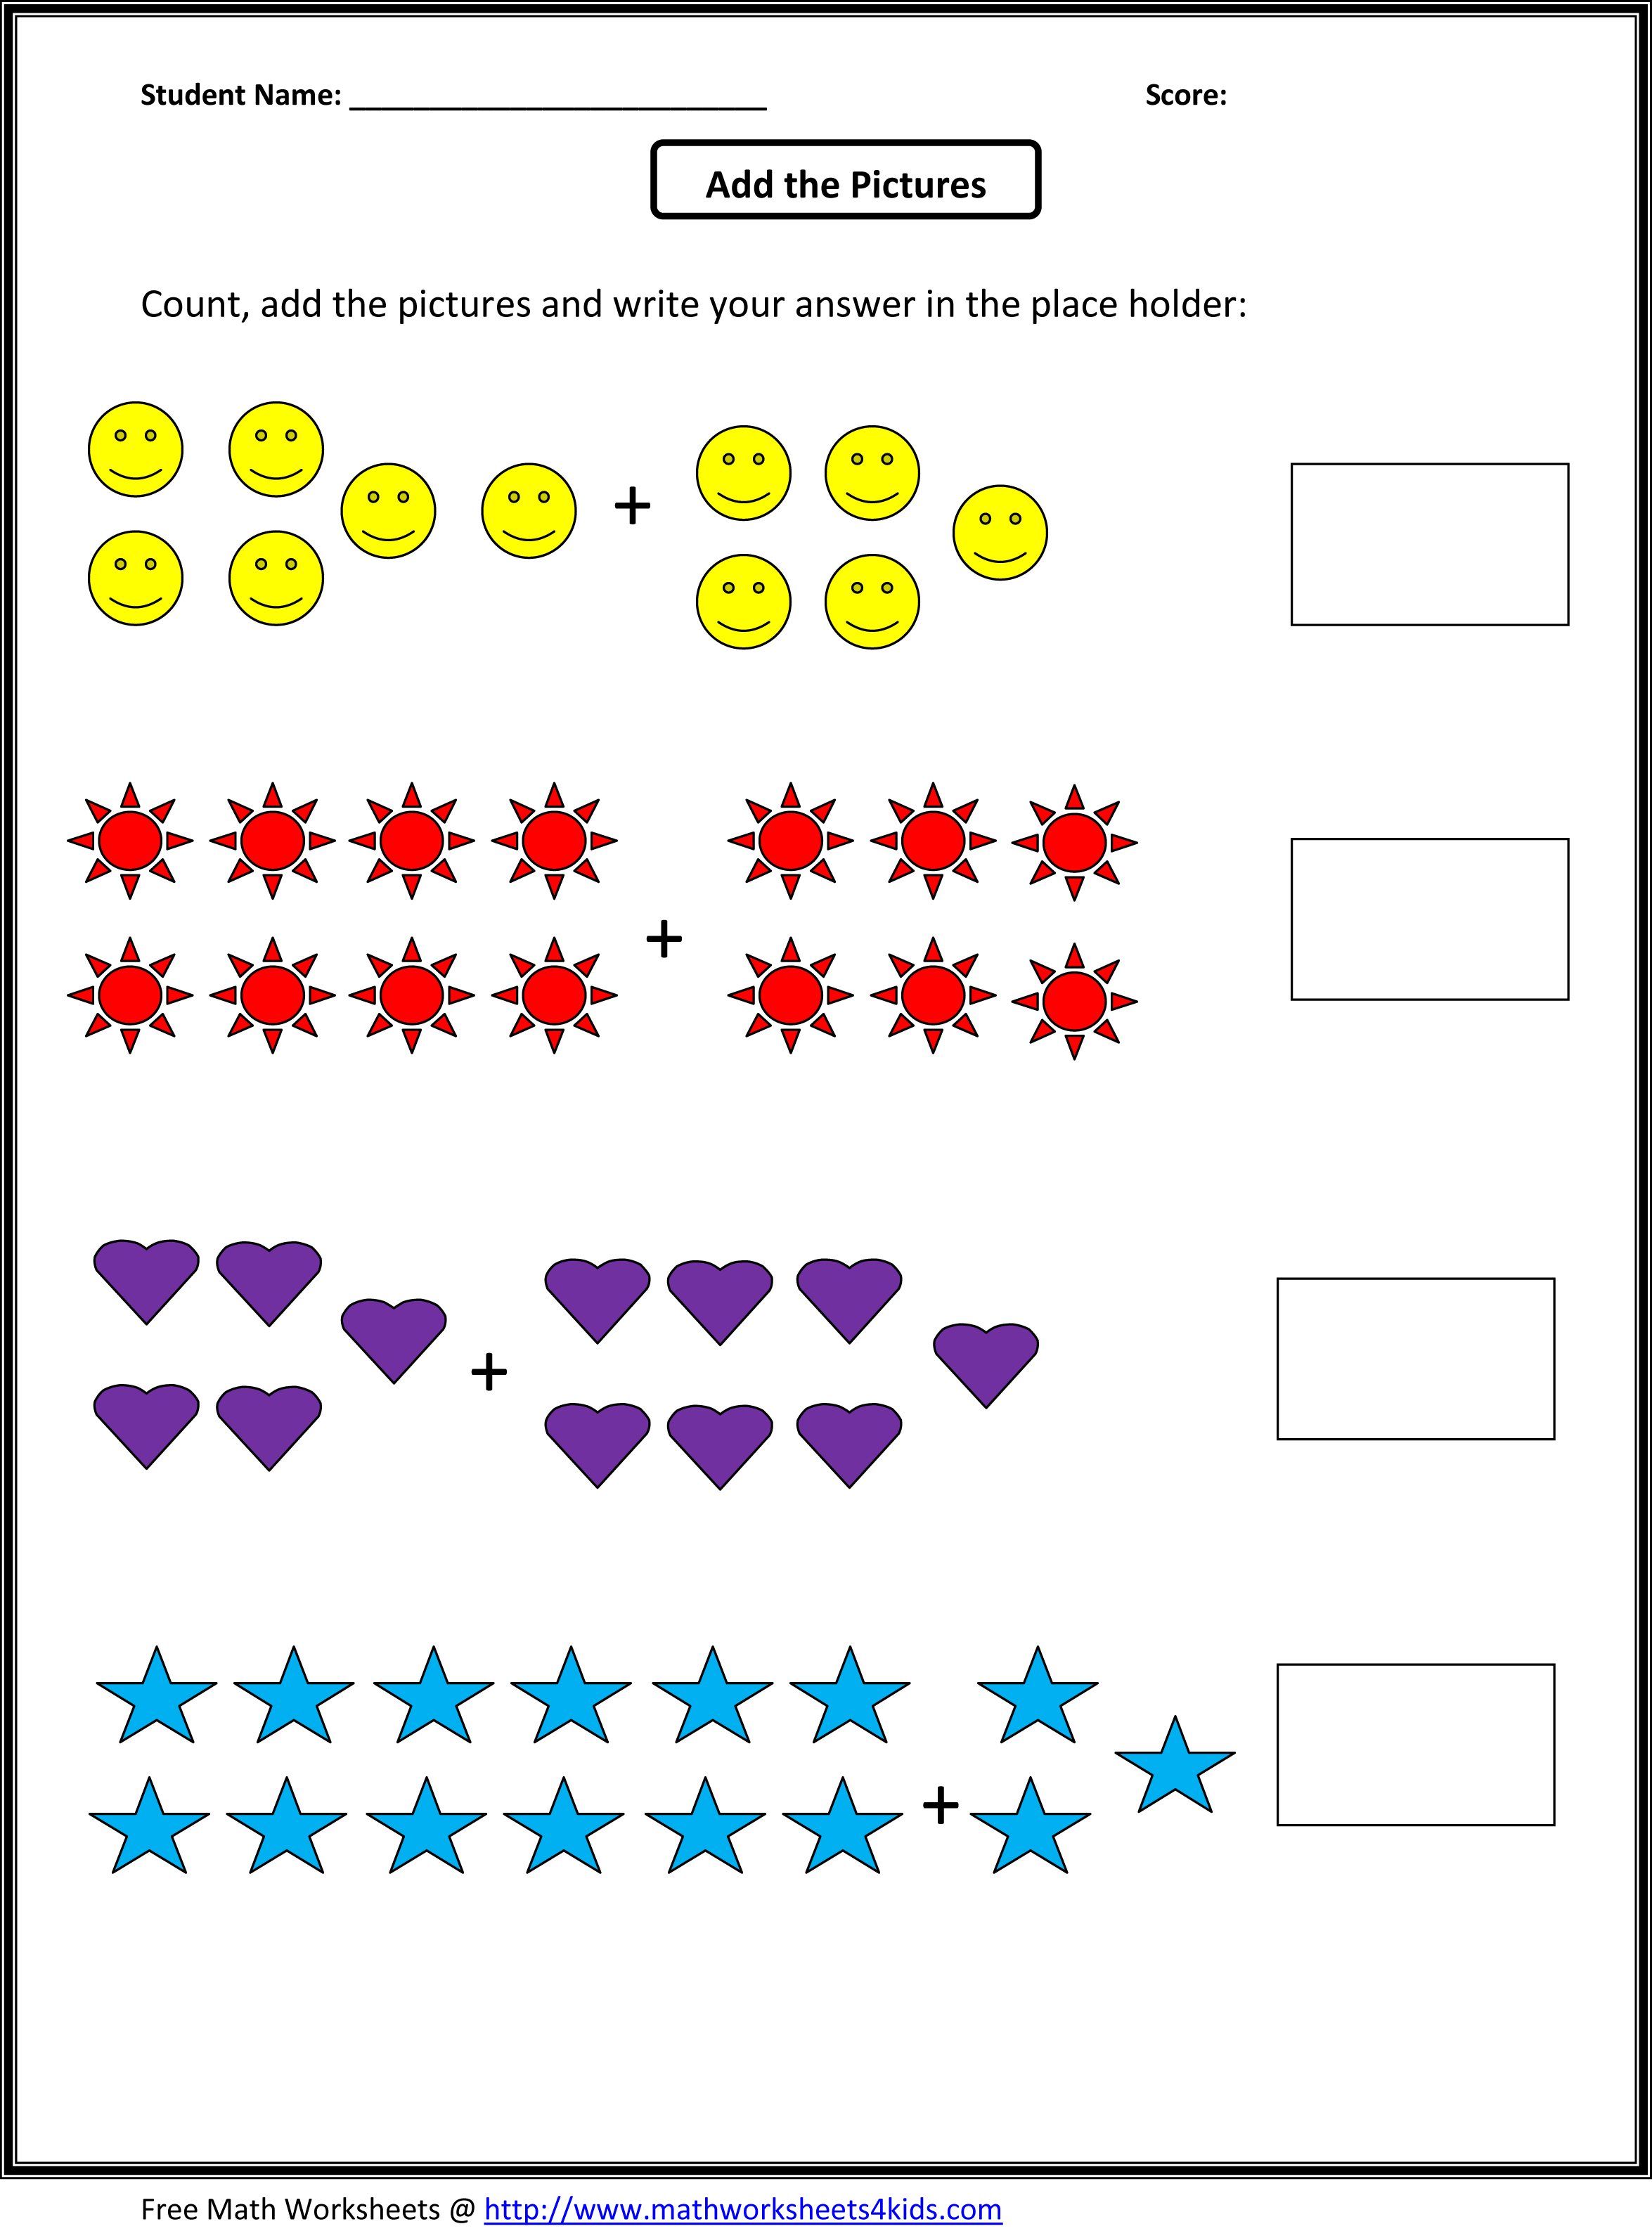 Proatmealus  Splendid Grade  Maths Worksheet  Reocurent With Likable Math Worksheets For St Grade Free  Reocurent With Delectable Vitamins And Minerals Worksheet Also Middle School Geometry Worksheets In Addition Positional Words Worksheet And Line Plots Worksheet As Well As Inverse Operations Worksheet Additionally Free Printable Math Addition Worksheets From Reocurentcom With Proatmealus  Likable Grade  Maths Worksheet  Reocurent With Delectable Math Worksheets For St Grade Free  Reocurent And Splendid Vitamins And Minerals Worksheet Also Middle School Geometry Worksheets In Addition Positional Words Worksheet From Reocurentcom